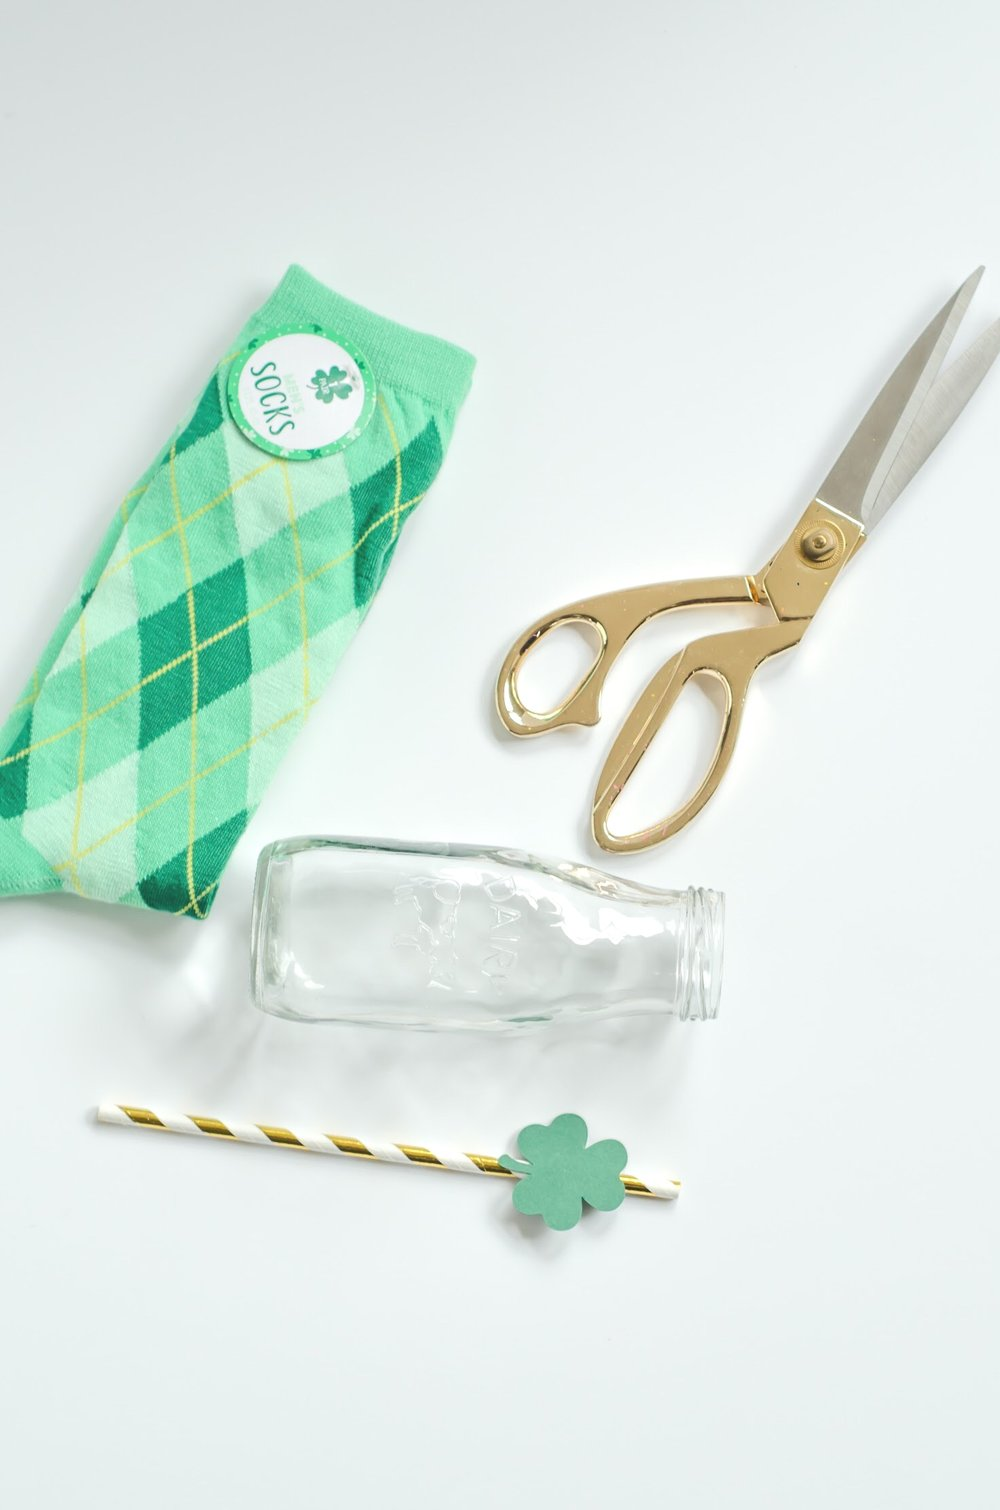 Easy and Quick DIY for St. Patrick's Day - step 1